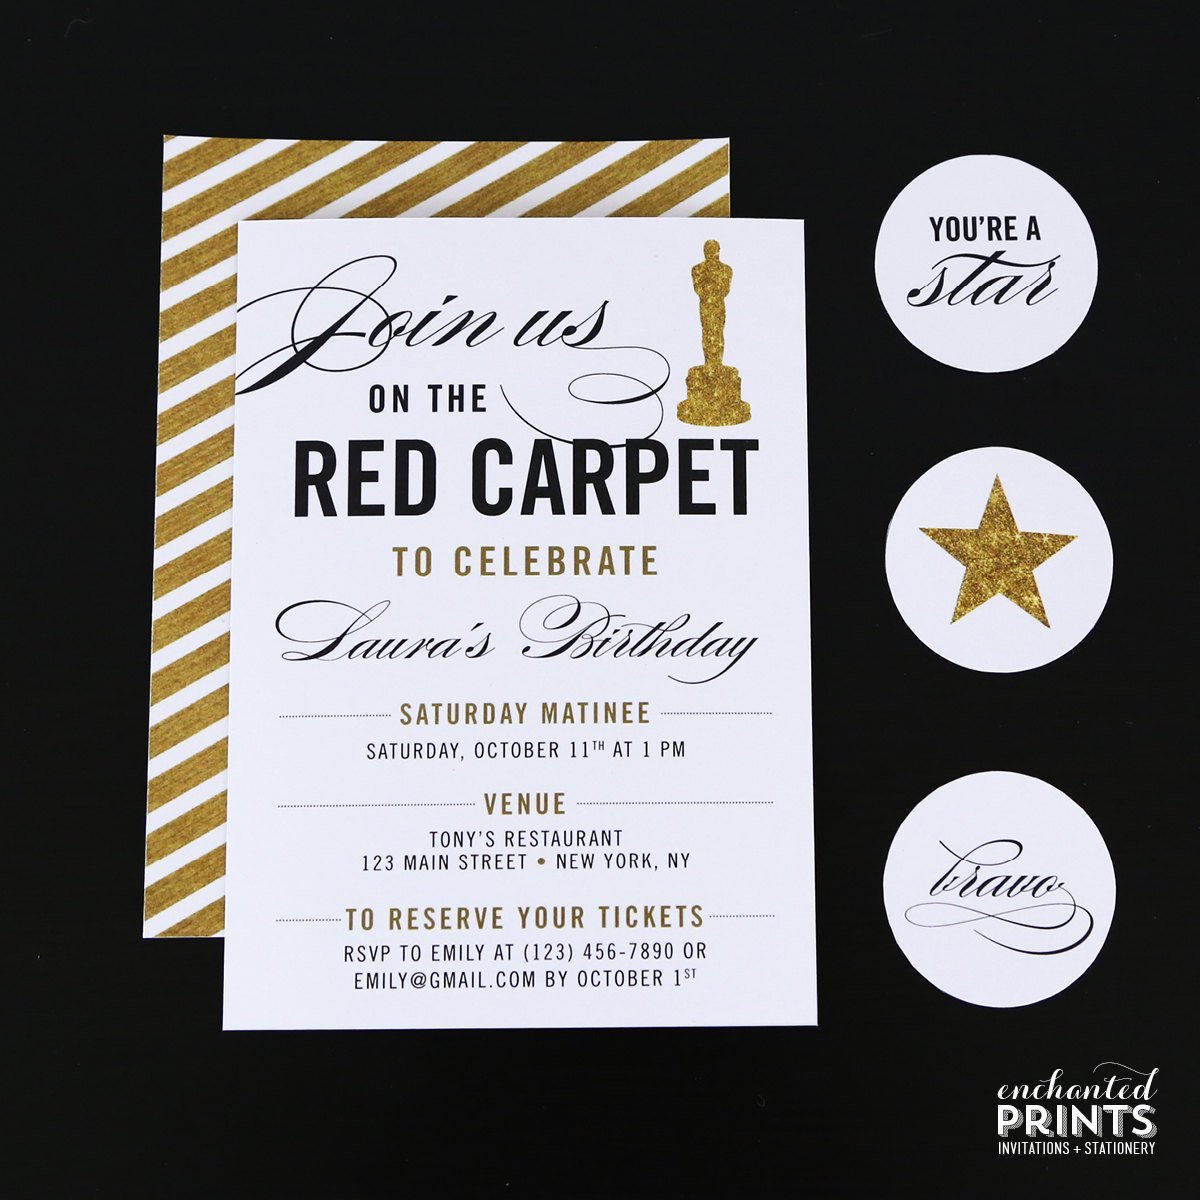 red carpet birthday party invitation utm medium=product listing promoted&utm source=bing&utm campaign=paper & party supplies paper